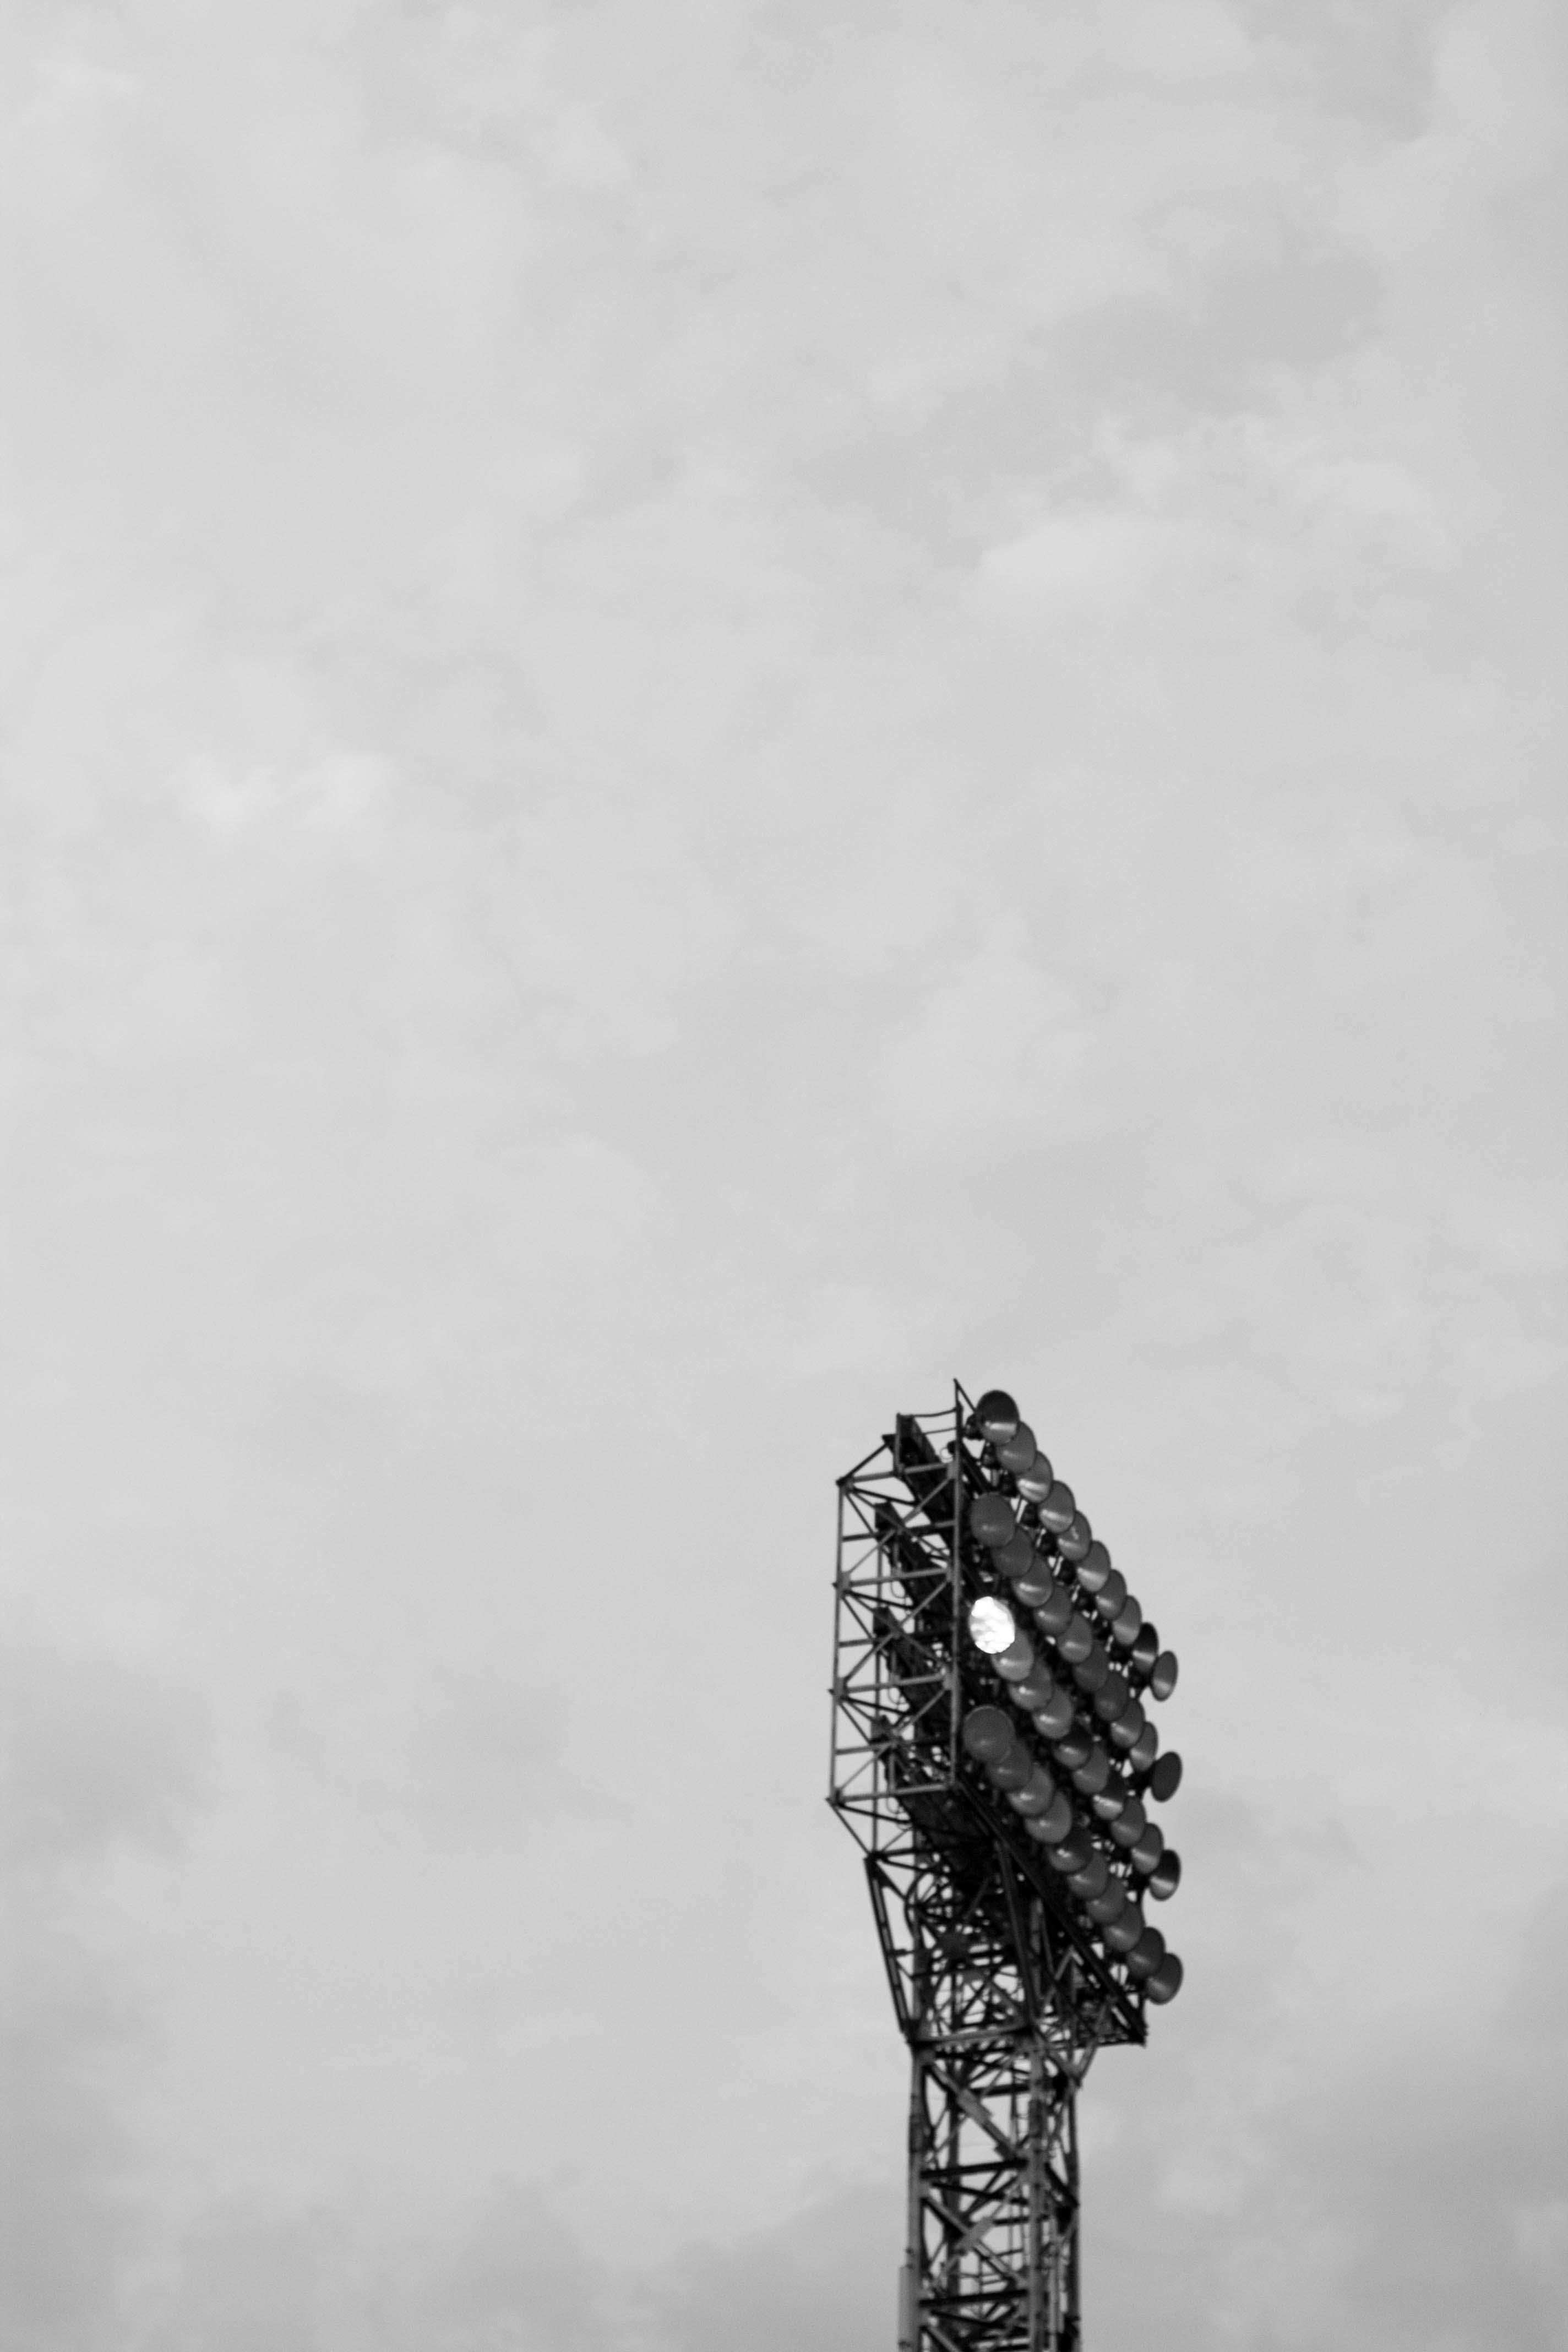 Free stock photo of black-and-white, one, sky